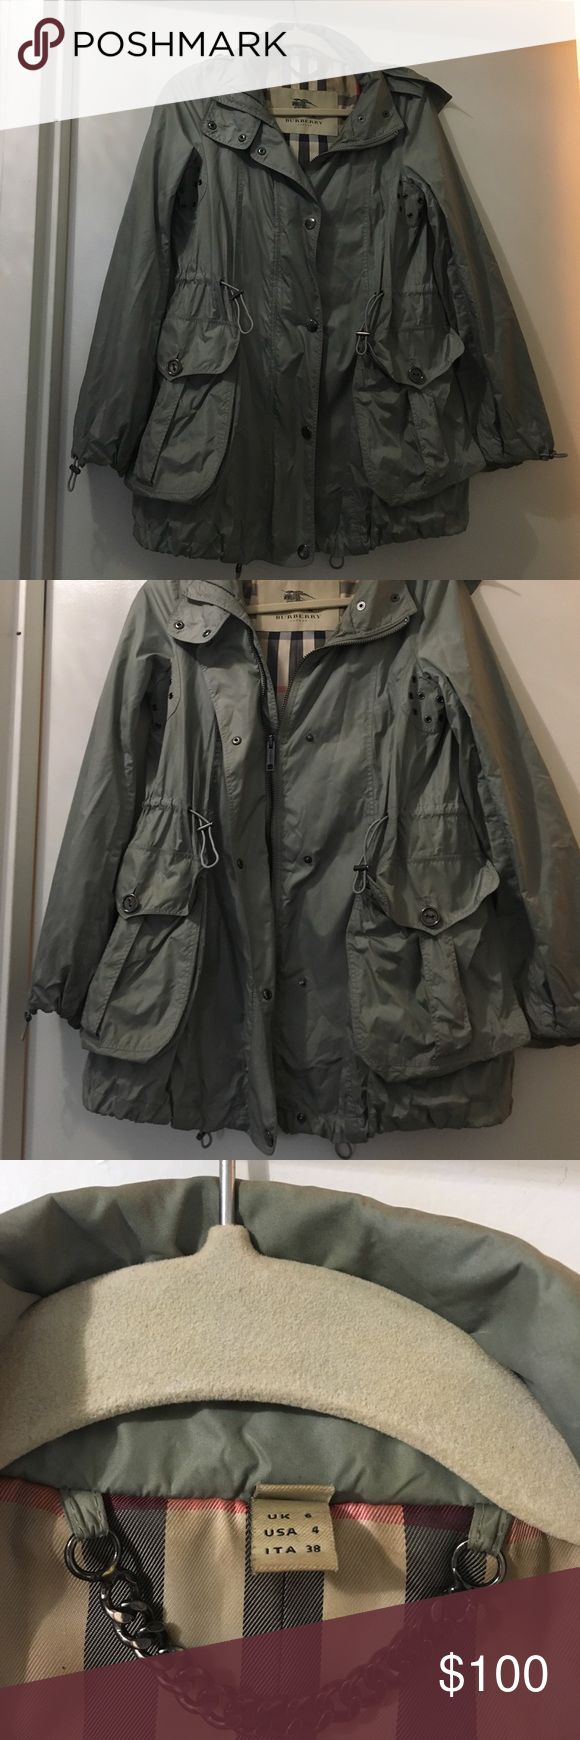 Burberry Rain Coat Women's rain coat, size 4. Small tear in right underarm (picture 4) that can easily be repaired. No major stains or other tears. Smoke free/pet free home. Burberry Jackets & Coats Utility Jackets